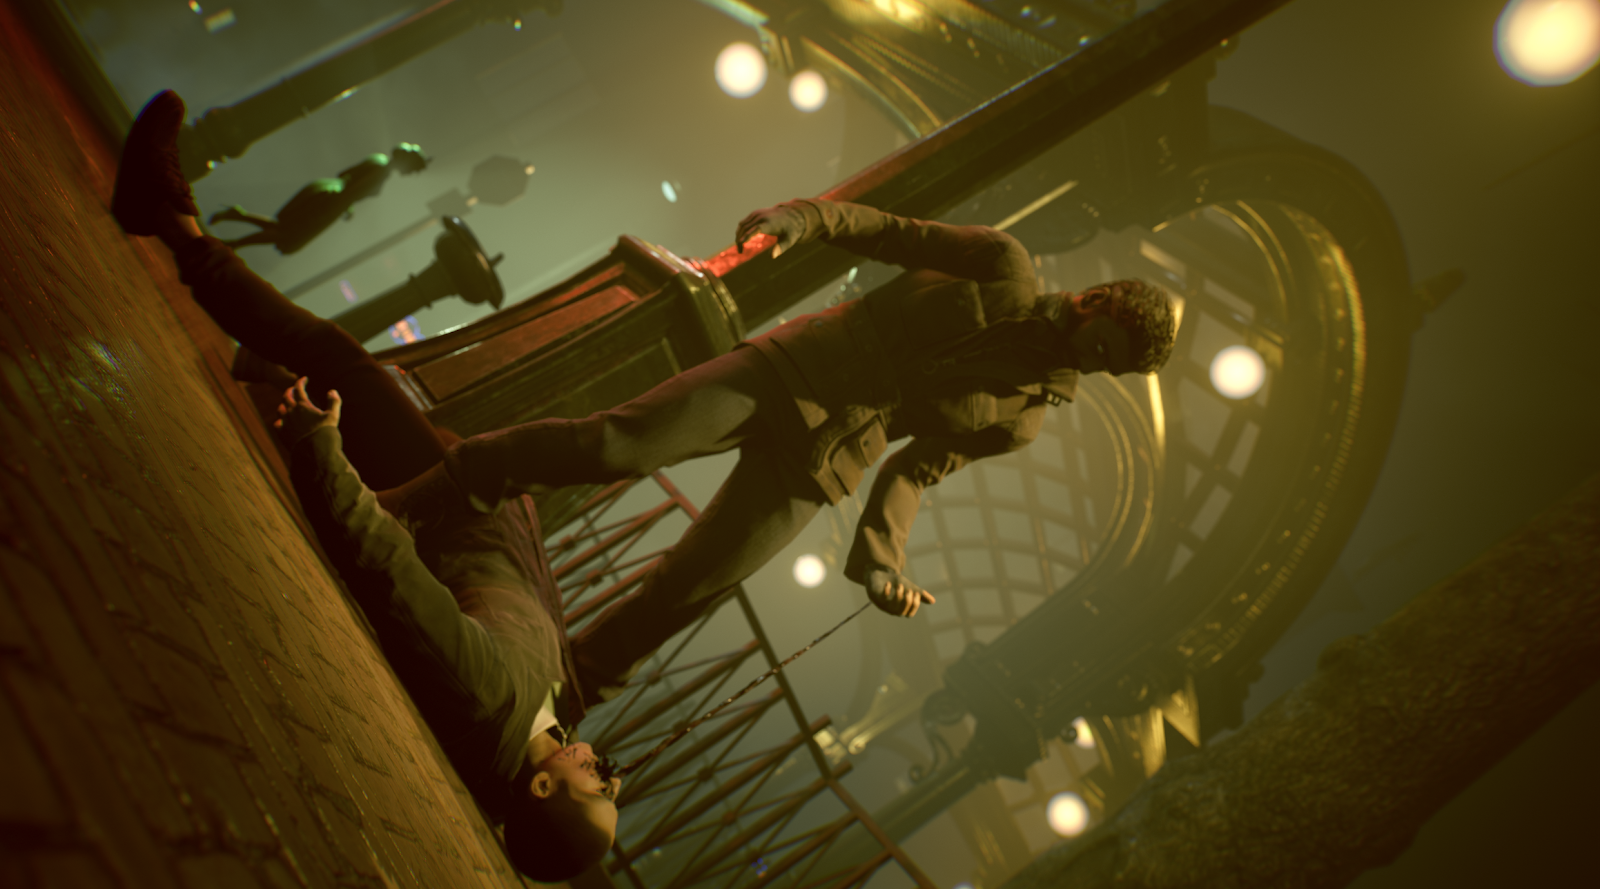 Vampire: The Masquerade Bloodlines Is Getting A Sequel, And It Looks Pretty Good